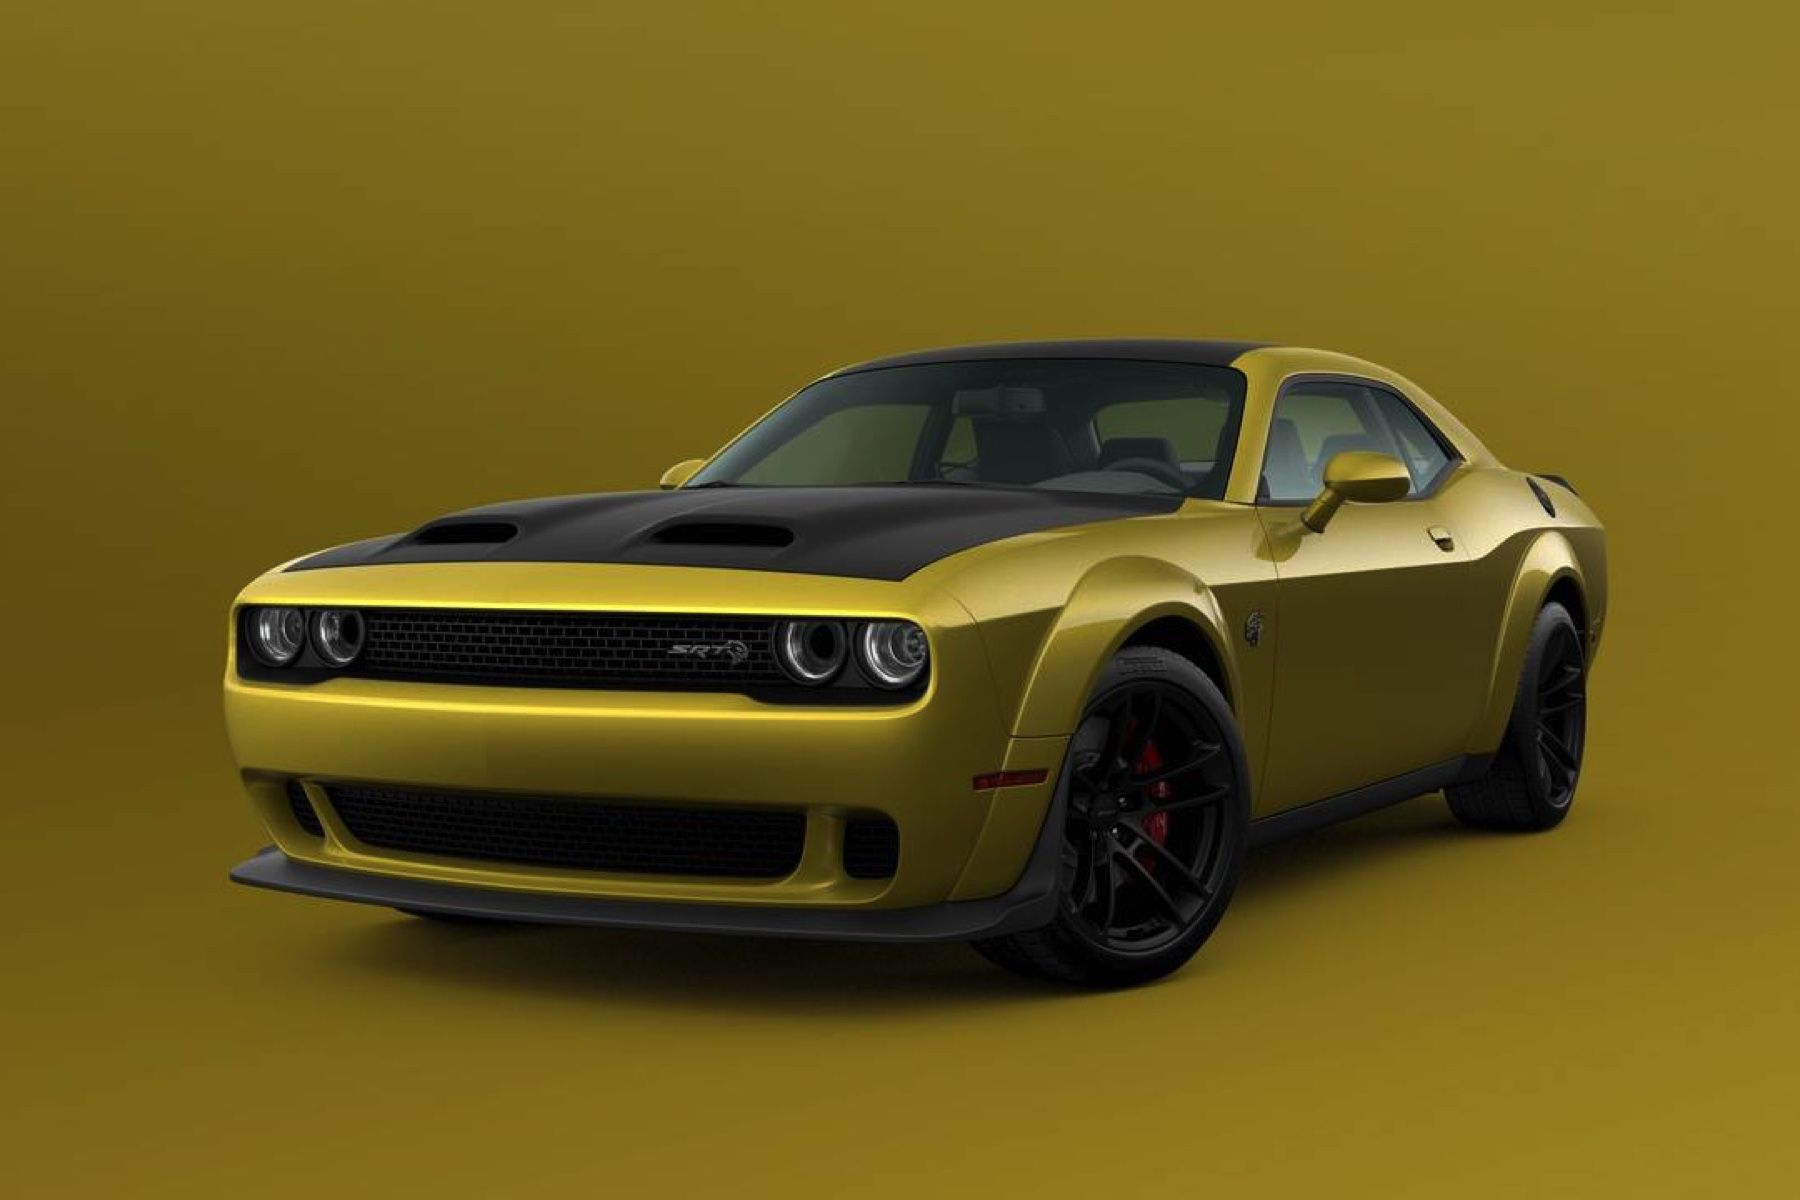 2021 Dodge Challenger SRT Hellcat Widebody shown in Gold Rush exterior paint color